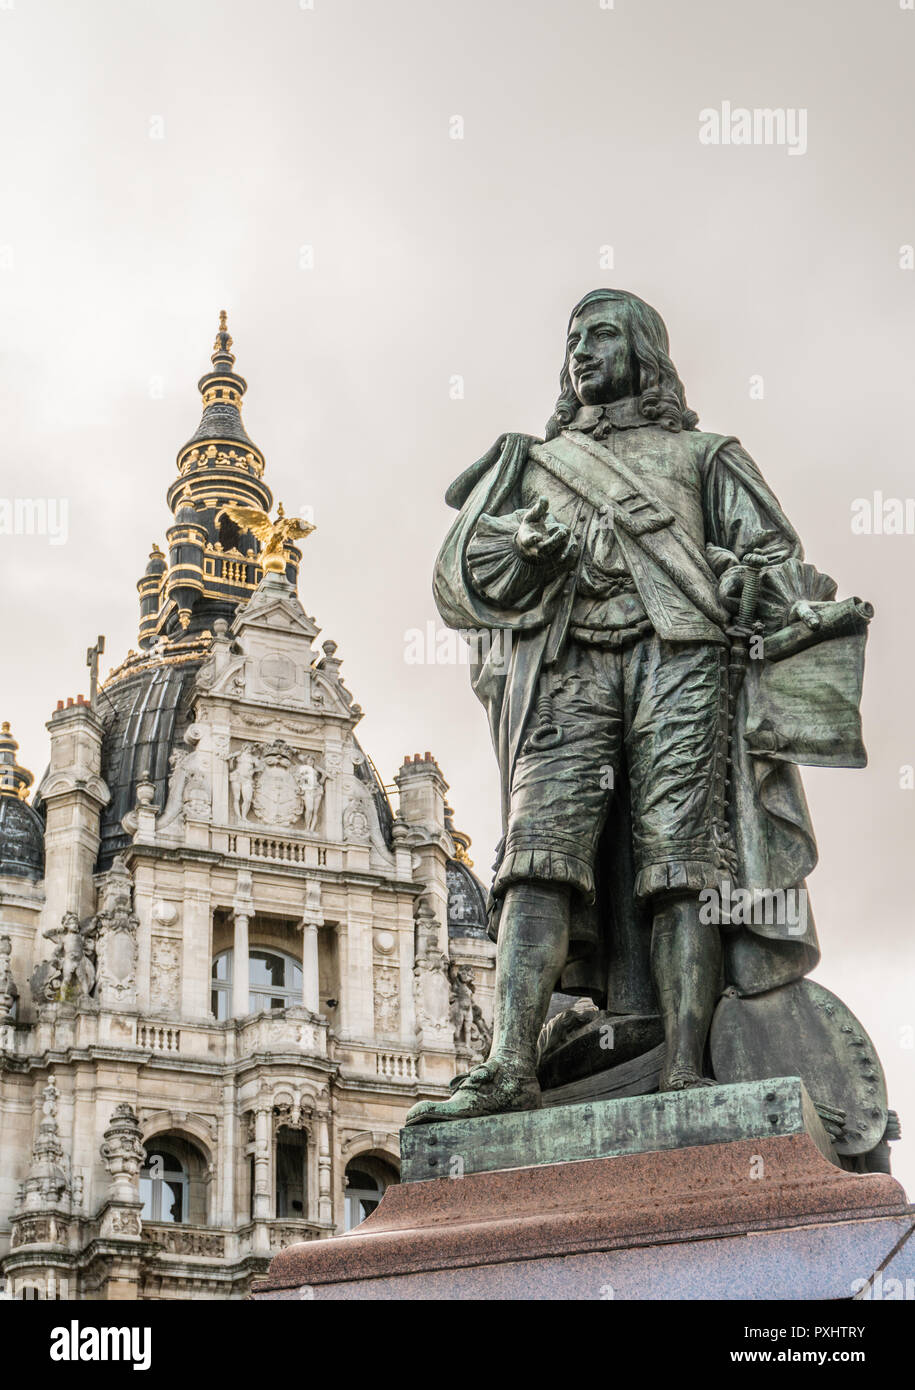 Statue of the 17th century Flemish painter David Teniers the Younger (1610 -1690) , in greenish bronze, against one of the impressing neobaroque corne - Stock Image